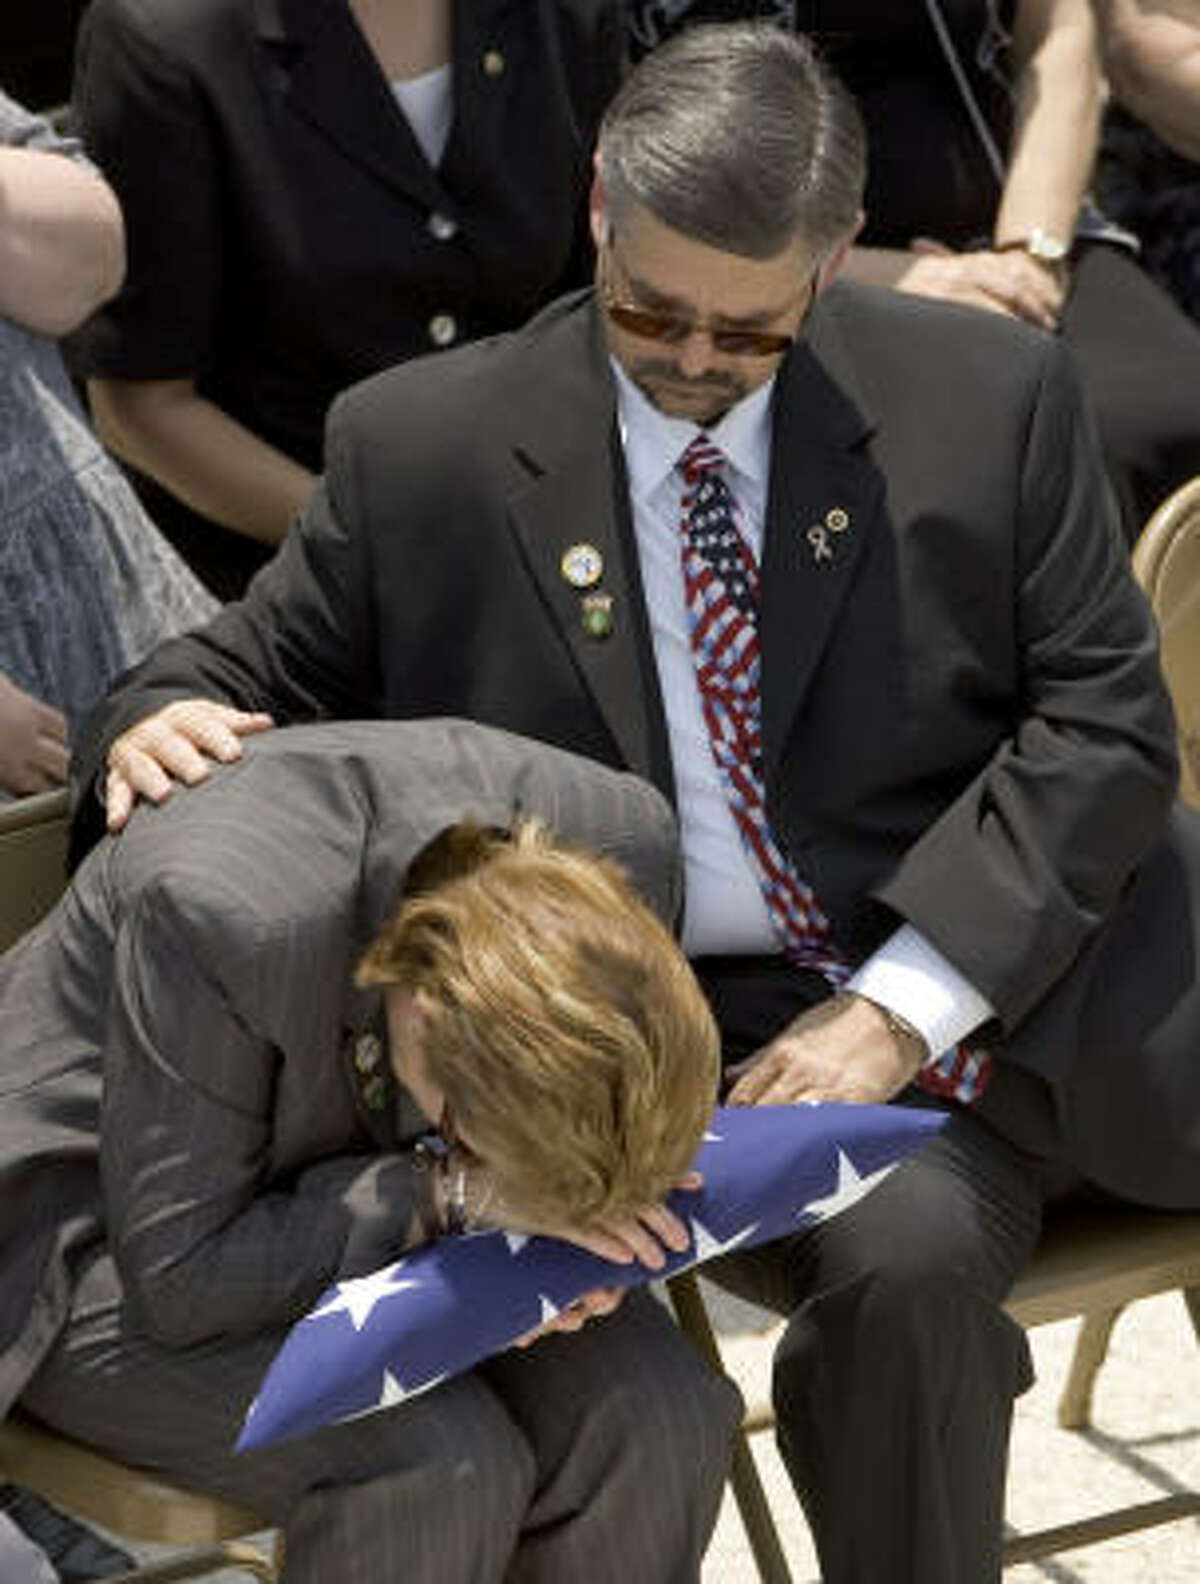 Melinda Carroll is comforted by her husband, David, as she lays her head on the flag presented to her during the funeral for her son, Cpl. Zachary Endsley, on Friday in Houston.